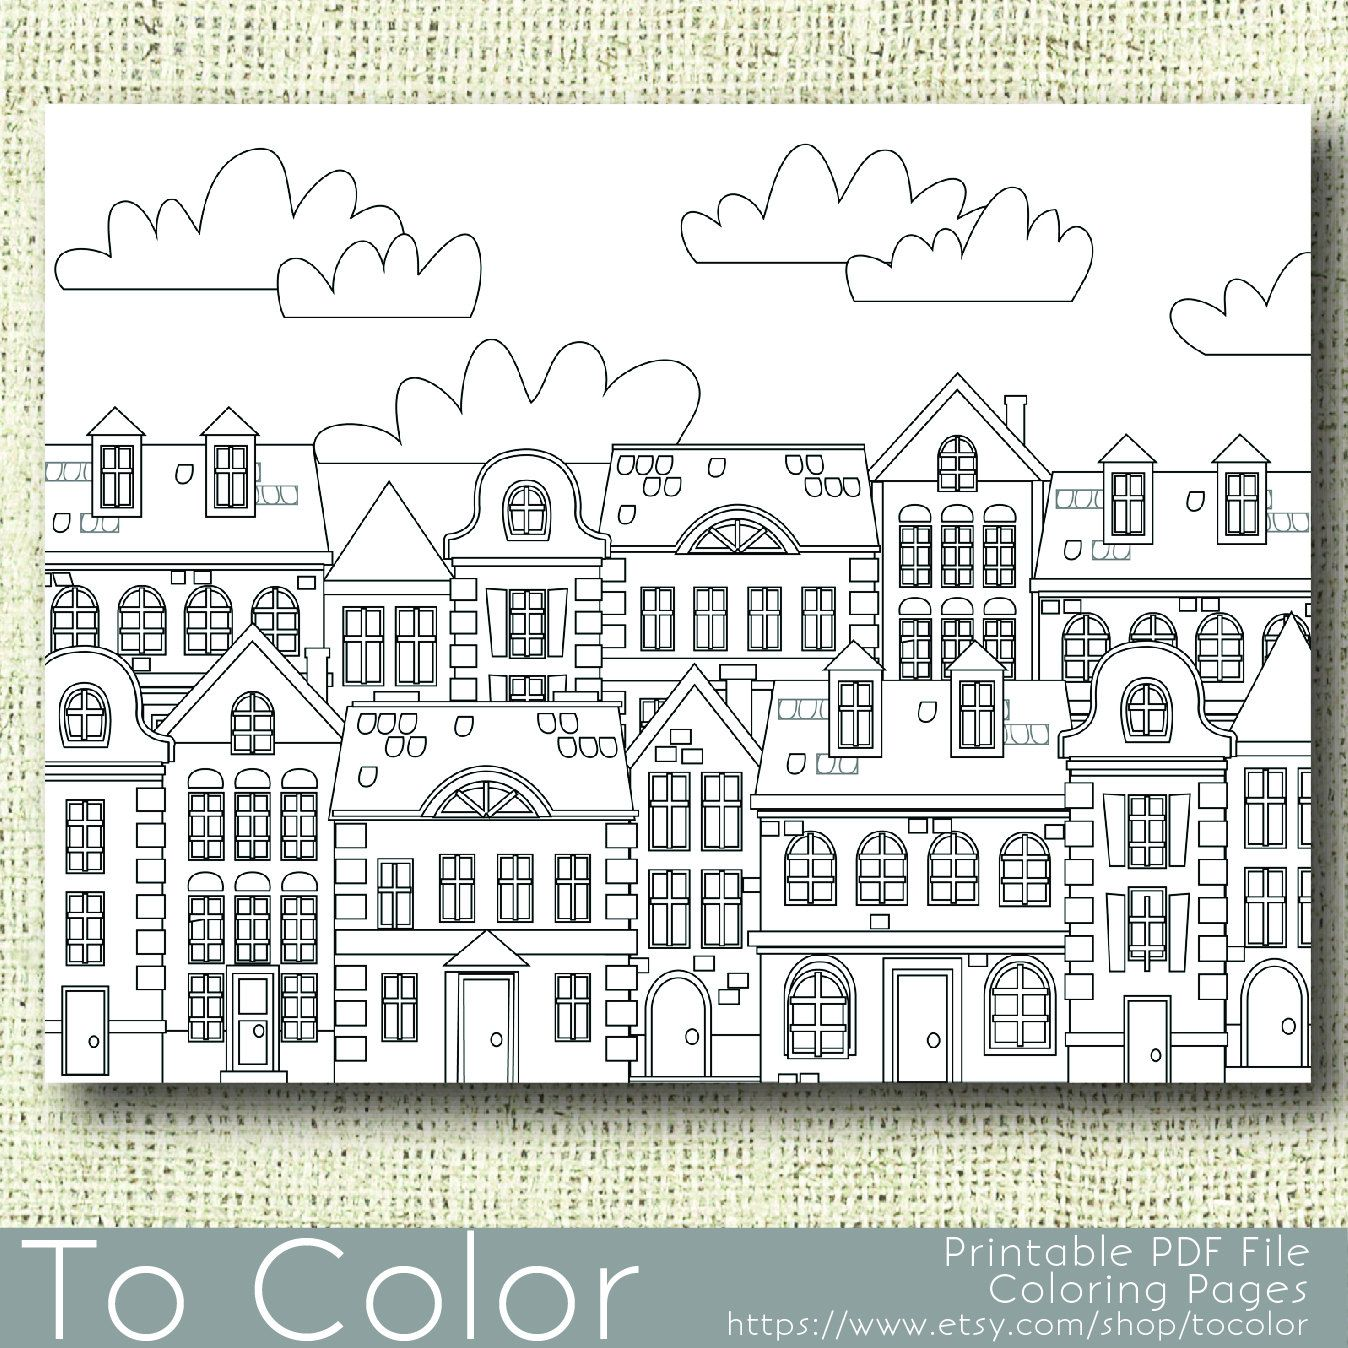 Printable Houses Coloring Page for Adults, PDF / JPG, Instant ...